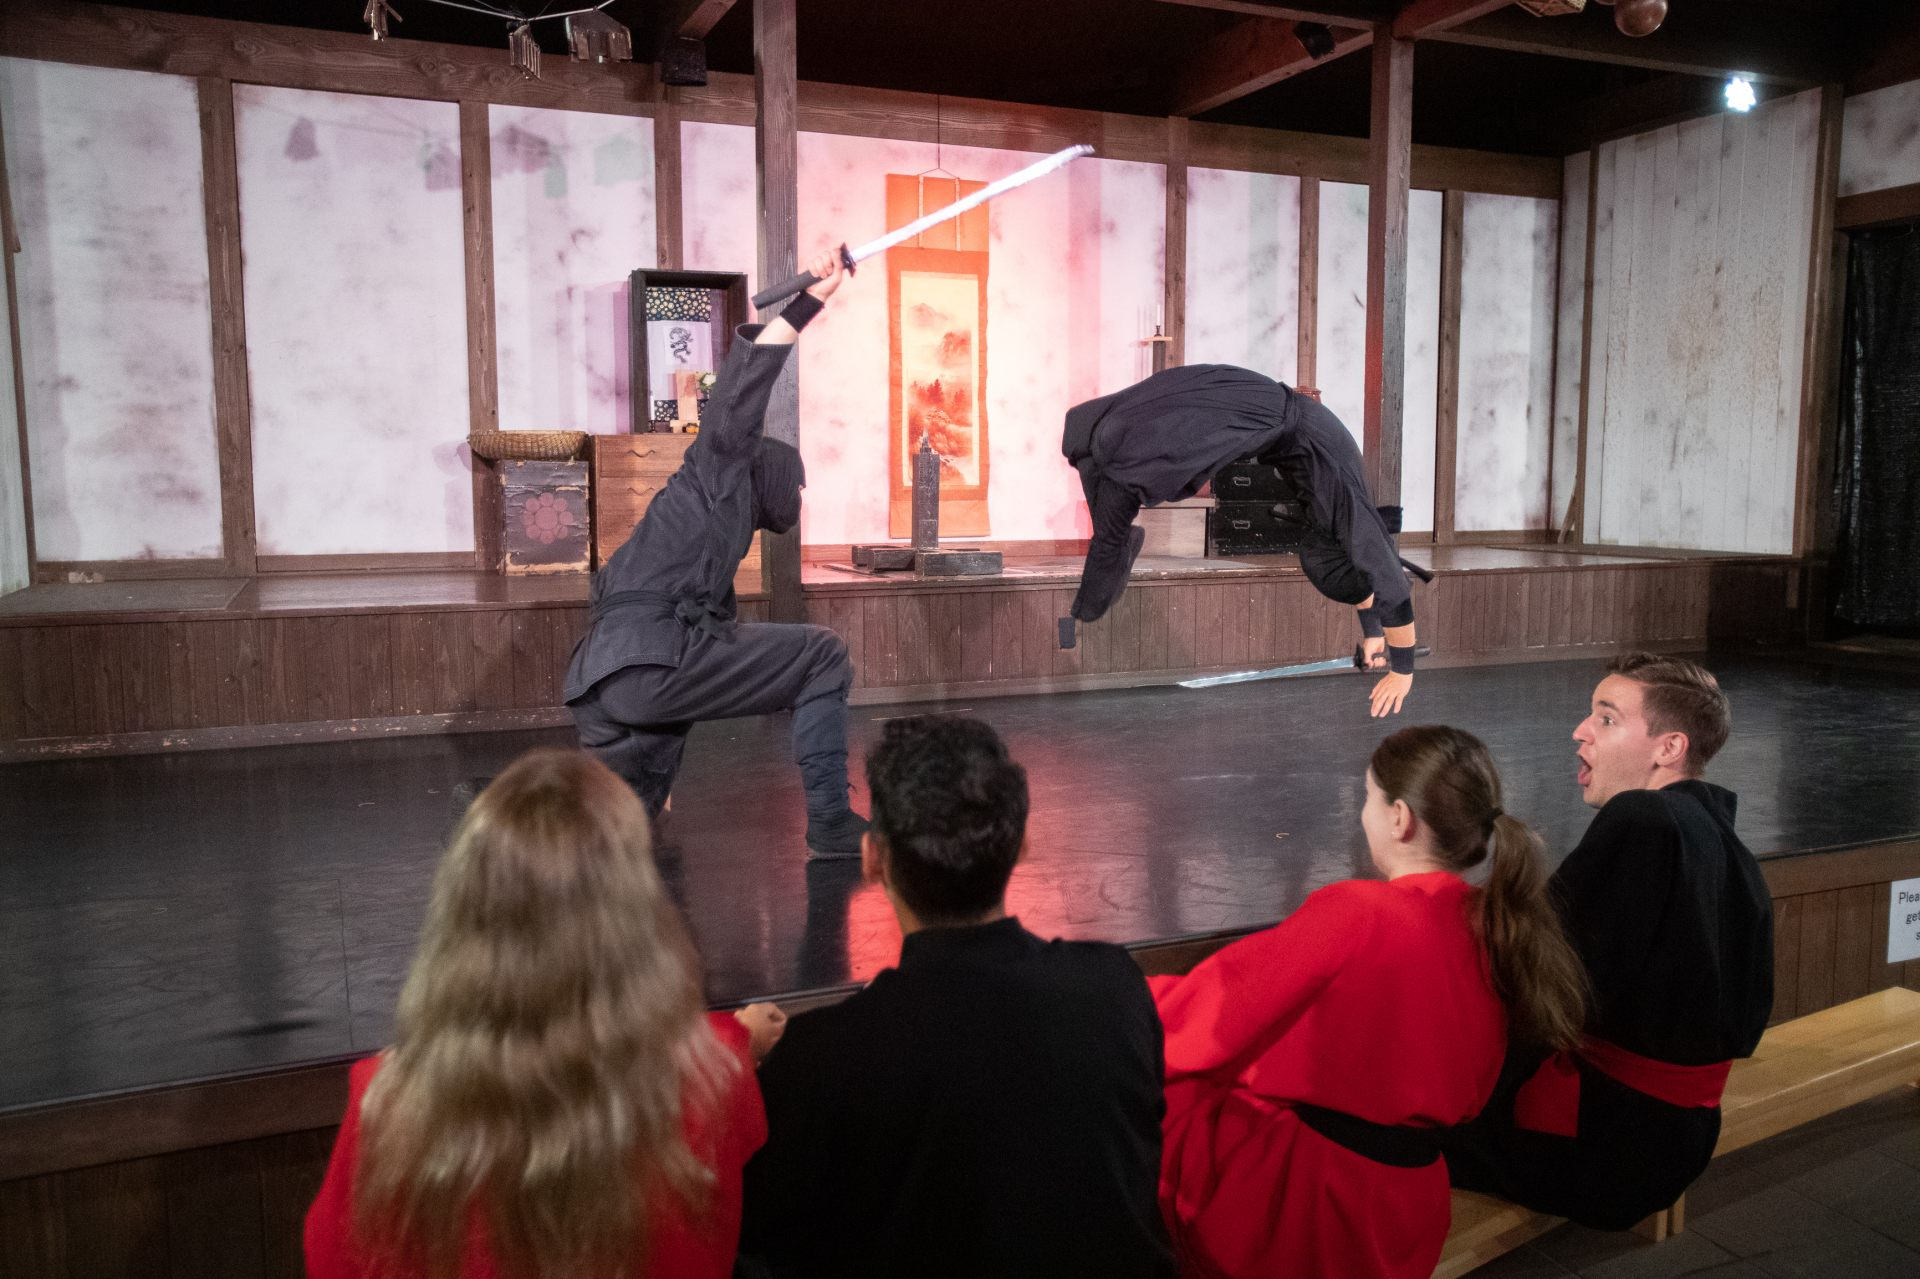 The ninja show offers dazzling acrobatics